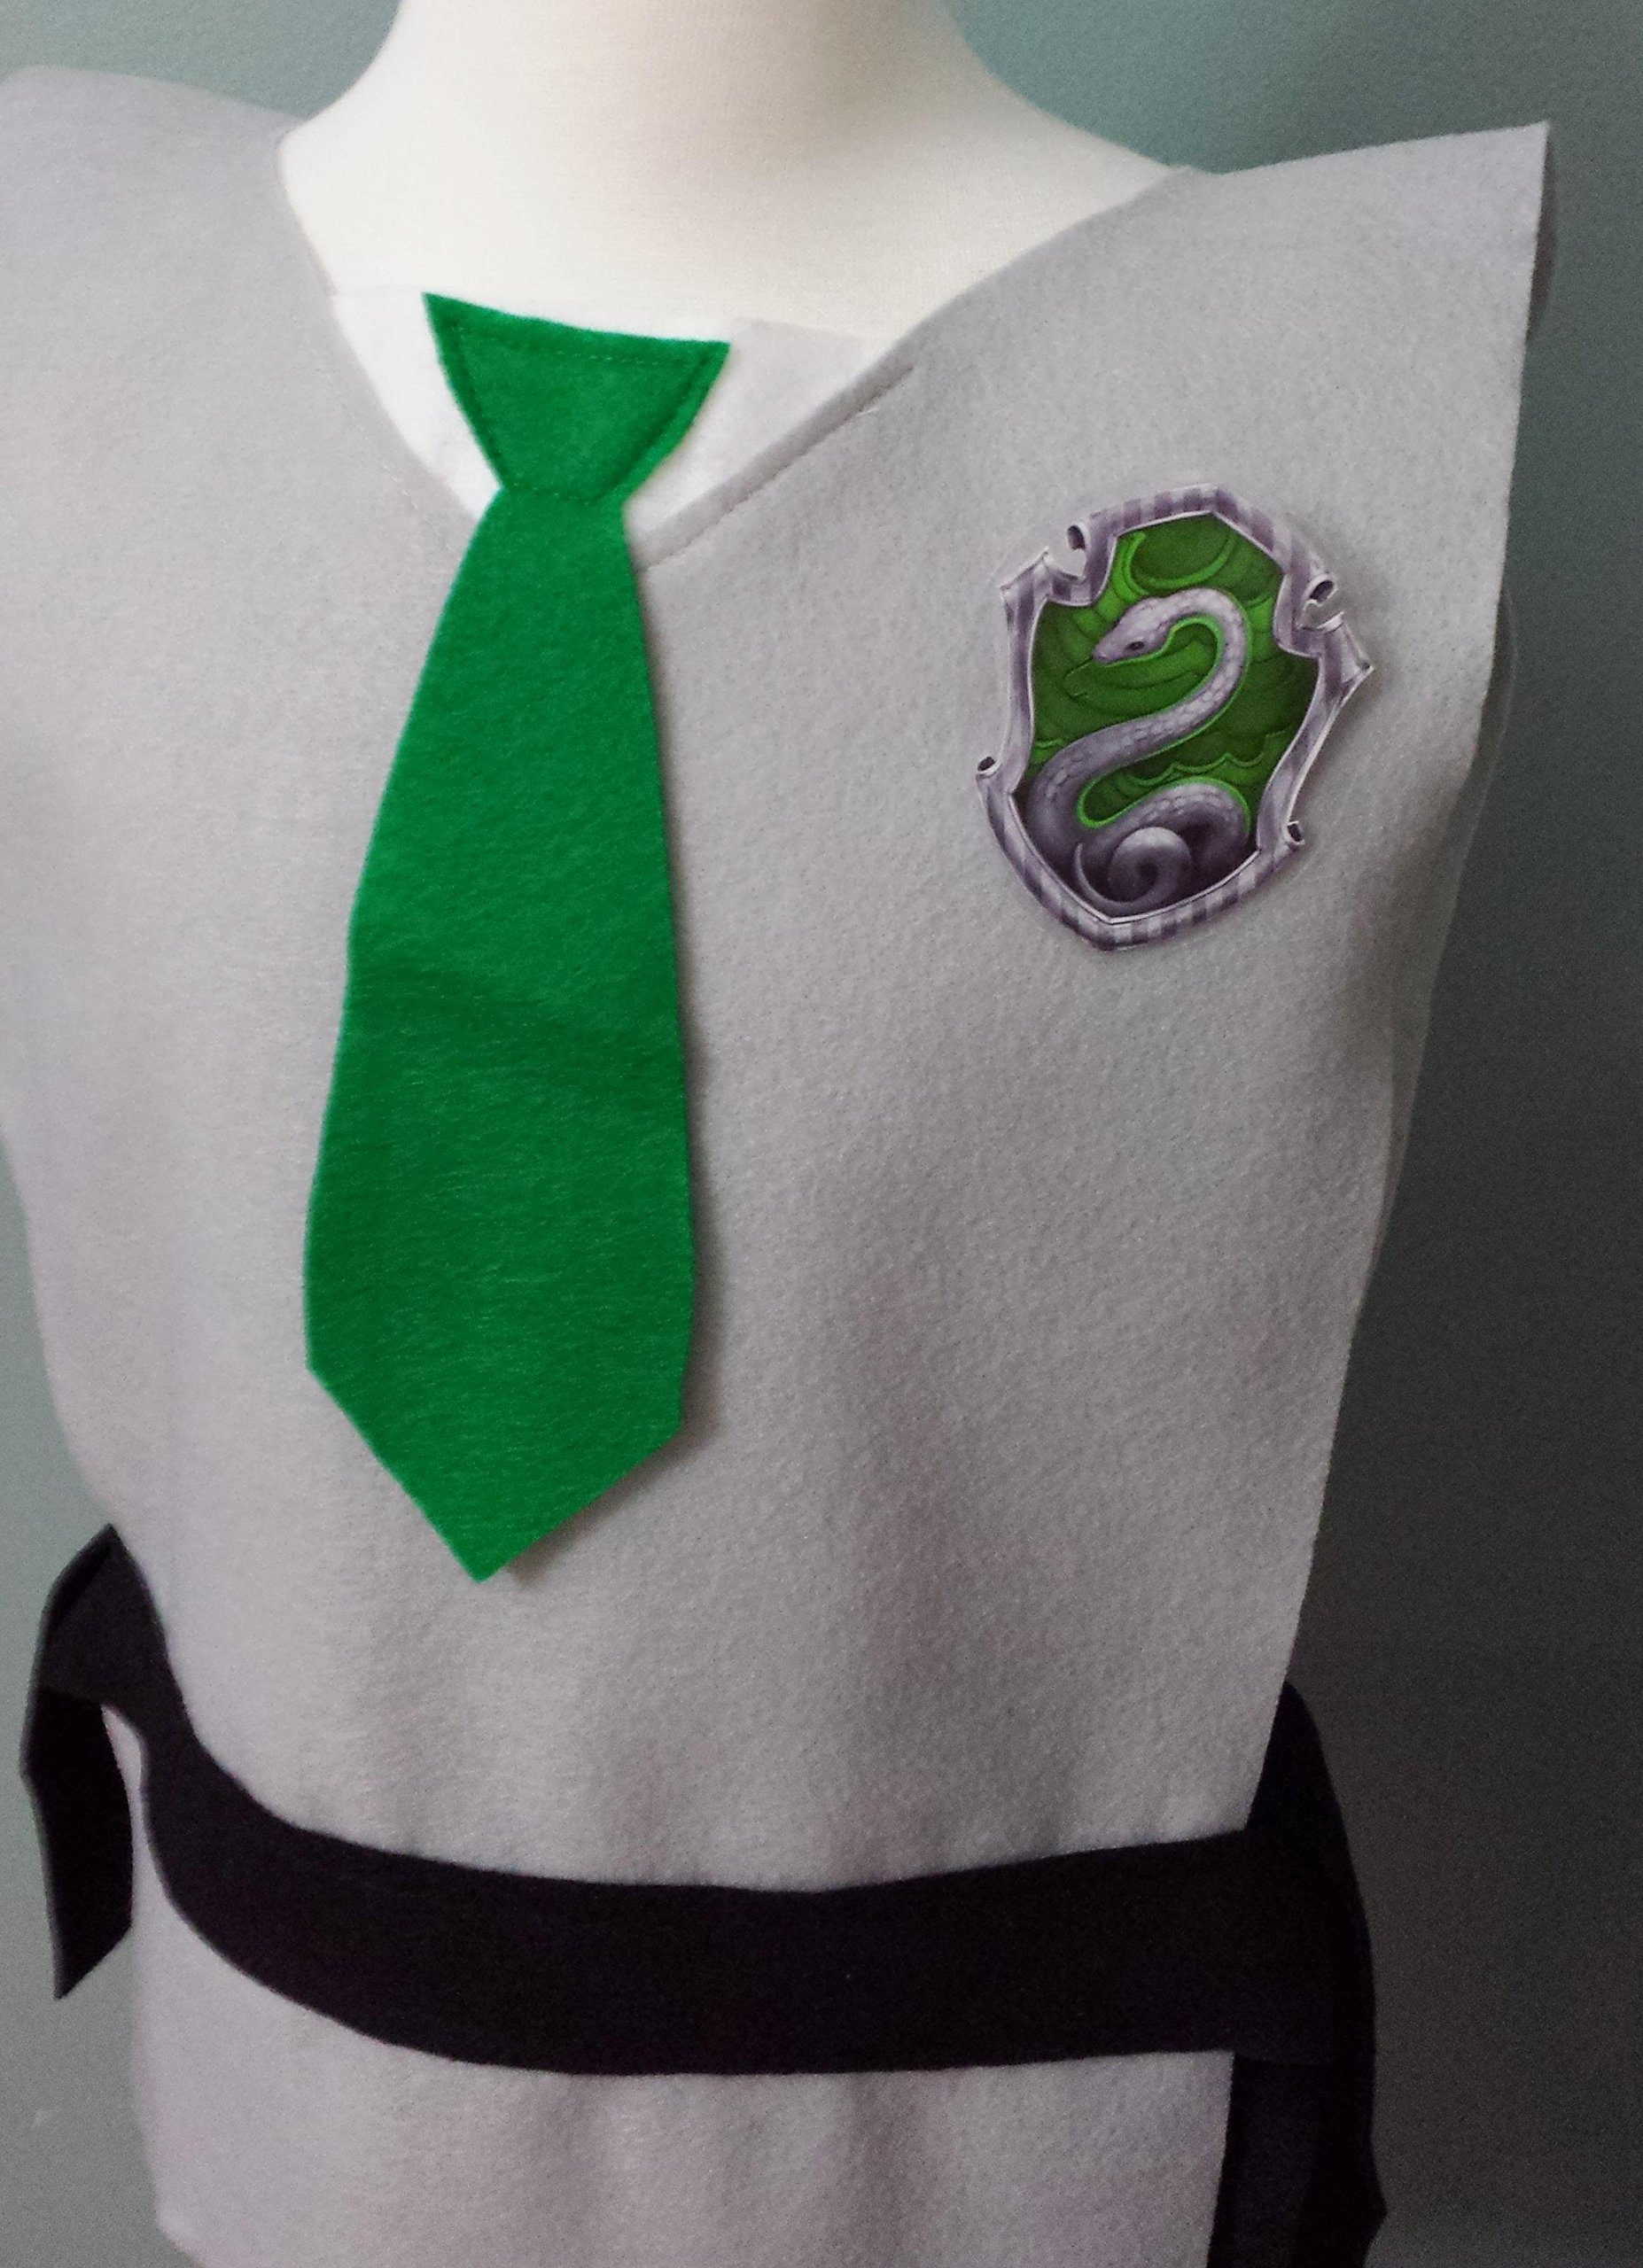 Kids Slytherin Costume Tunic - Perfect for under your robe! (Harry Potter/Draco Malfoy/Hogwarts) - Baby/Toddler/Kids/Teens/Adult Size